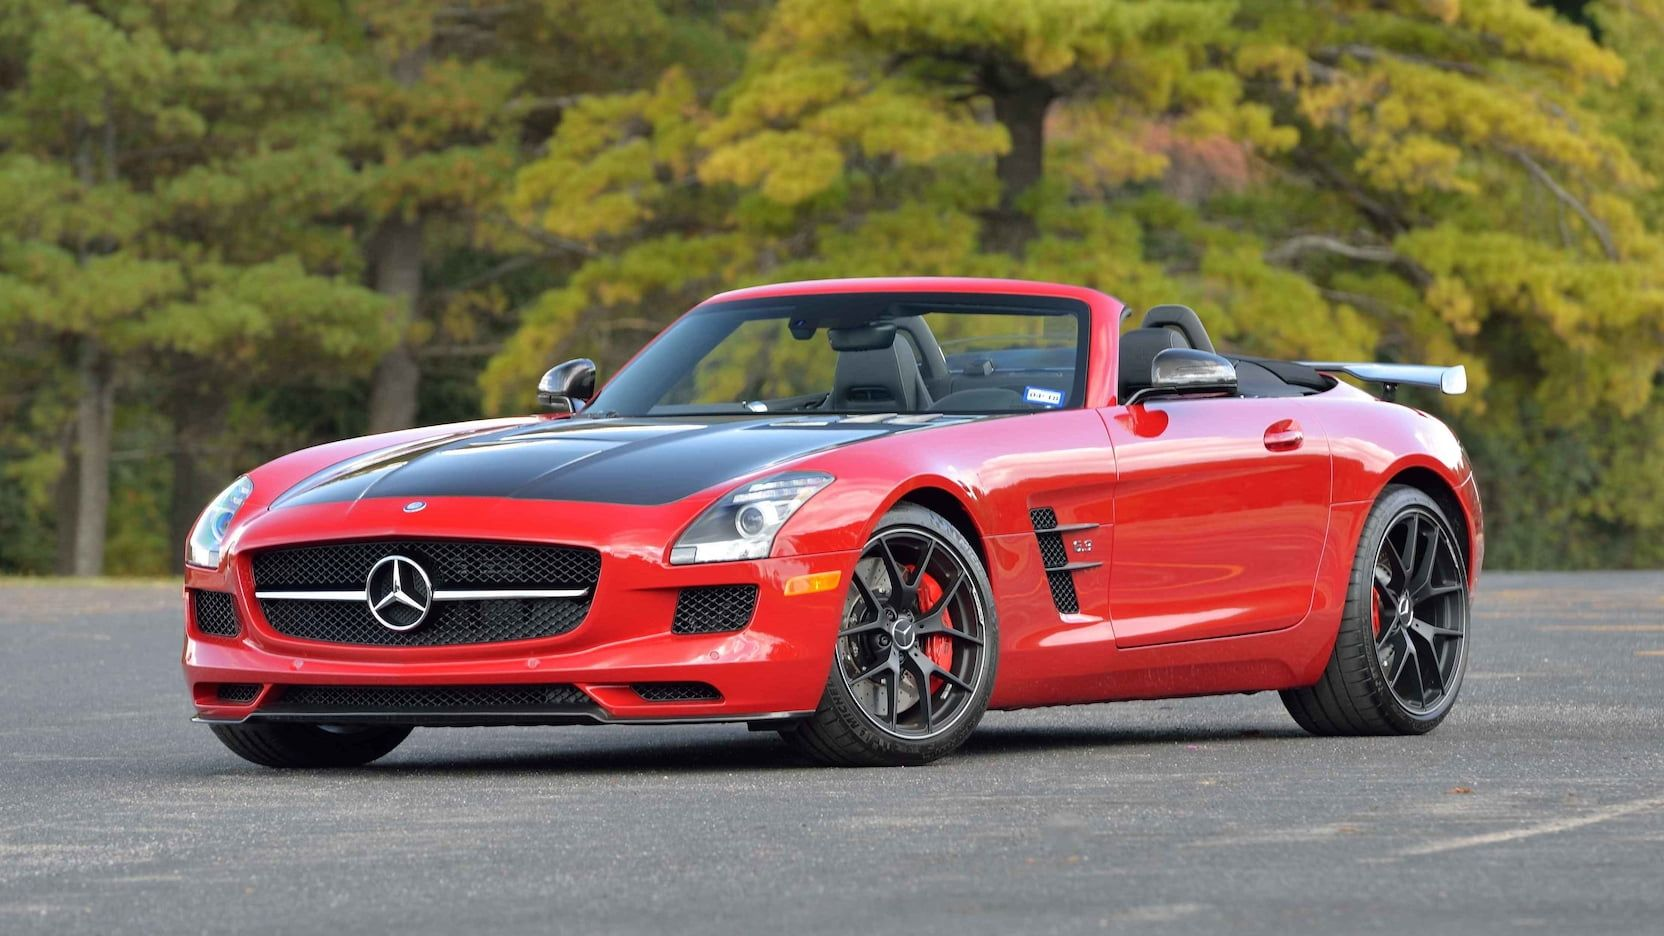 2015 Mercedes Benz Sls Amg Gt Final Edition Presented As Lot S113